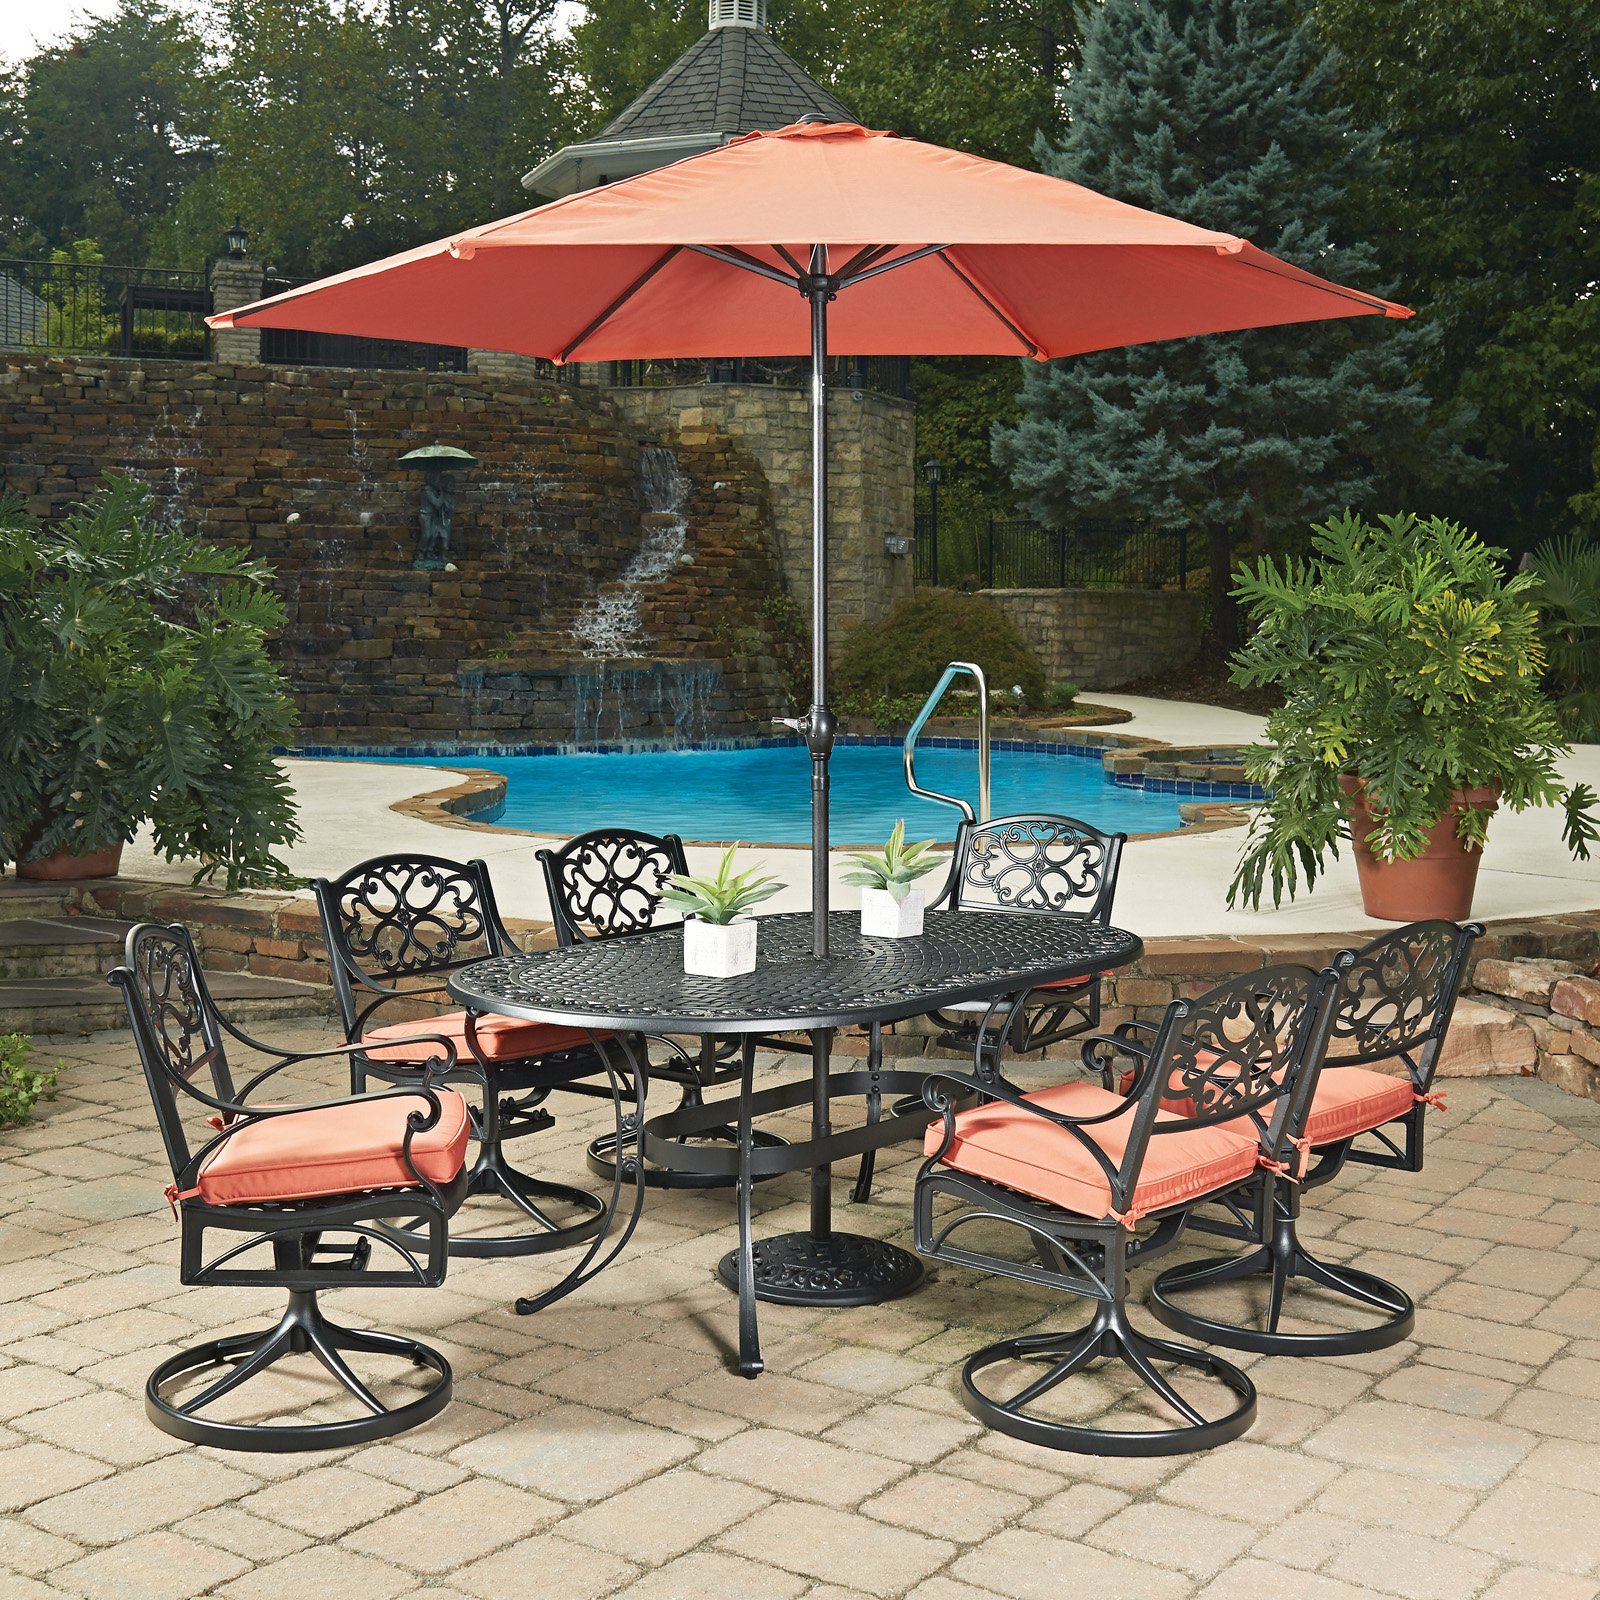 Biscayne Black Oval 9 Pc Outdoor Dining Table, 4 Arm Chairs, 2 Swivel Rocking Chairs with Cushions & Umbrella with Base